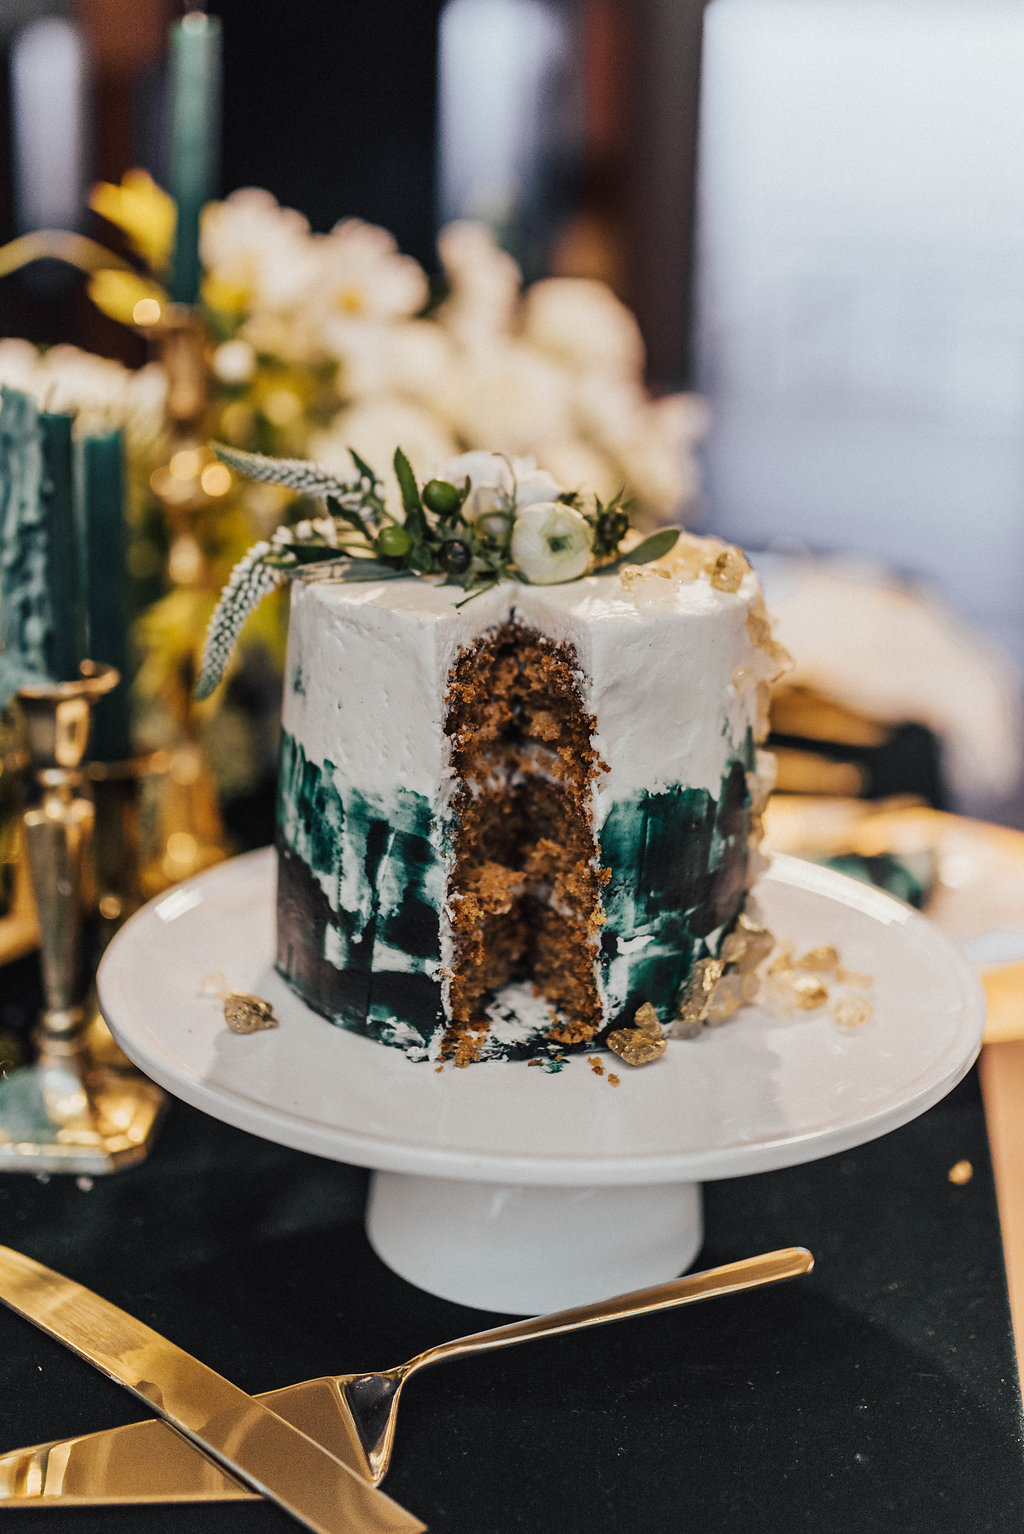 Photo by: Sam and Sola Studio  Cake Design: Eat More Cake by Candice